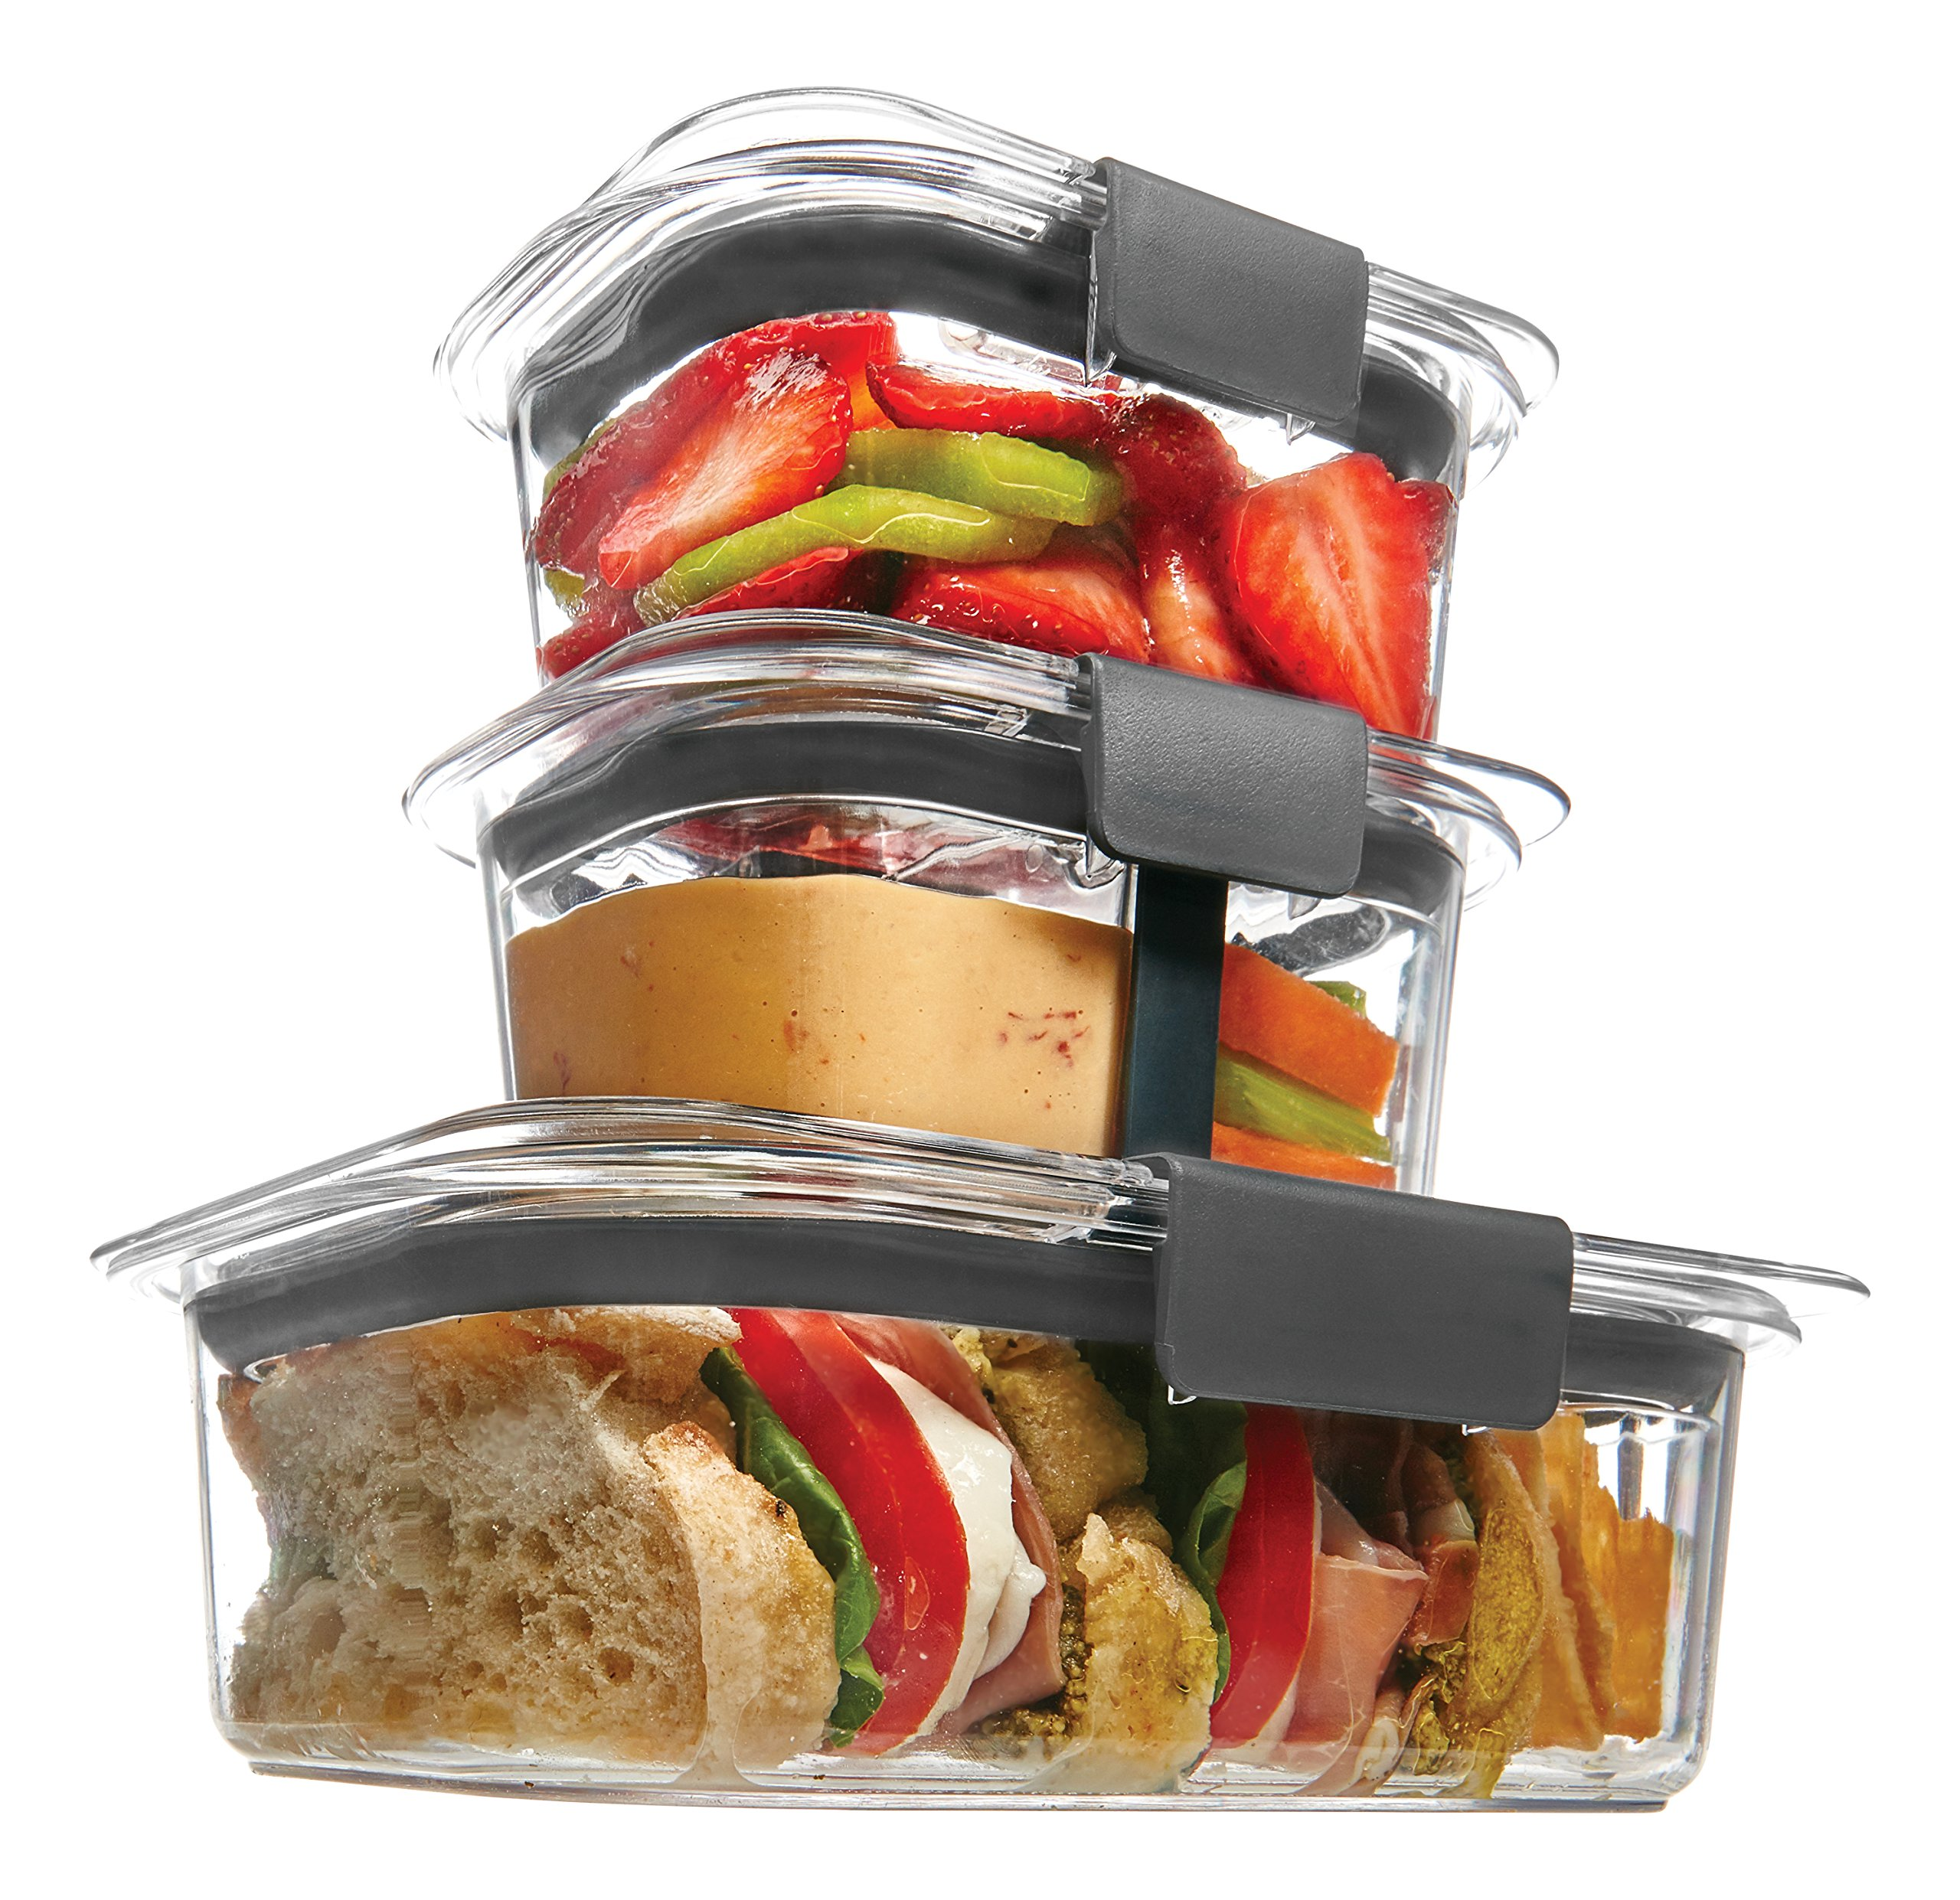 Rubbermaid Brilliance Food Storage Container, Sandwich and Snack Lunch Kit, Clear, 10-Piece Set 1997842 by Rubbermaid (Image #2)